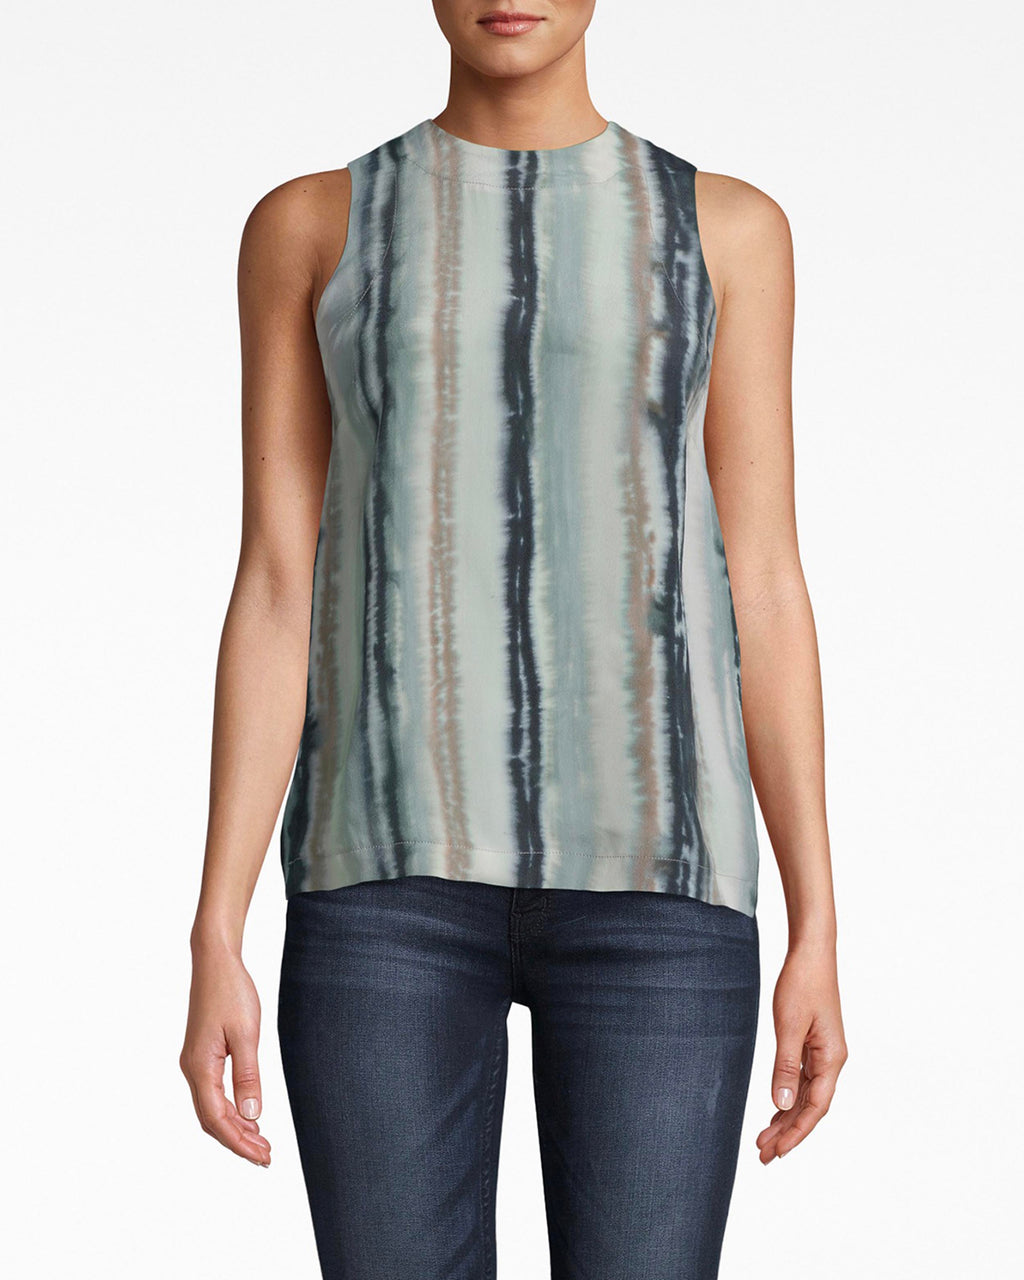 BA10174 - INK STRIPE SILK TANK TOP - tops - blouses - The perfect match for denim. The stripes on this high neck tank elongate your silhouette. The color palette balances between vivid and subdued. Exposed back cutout and button for closure.